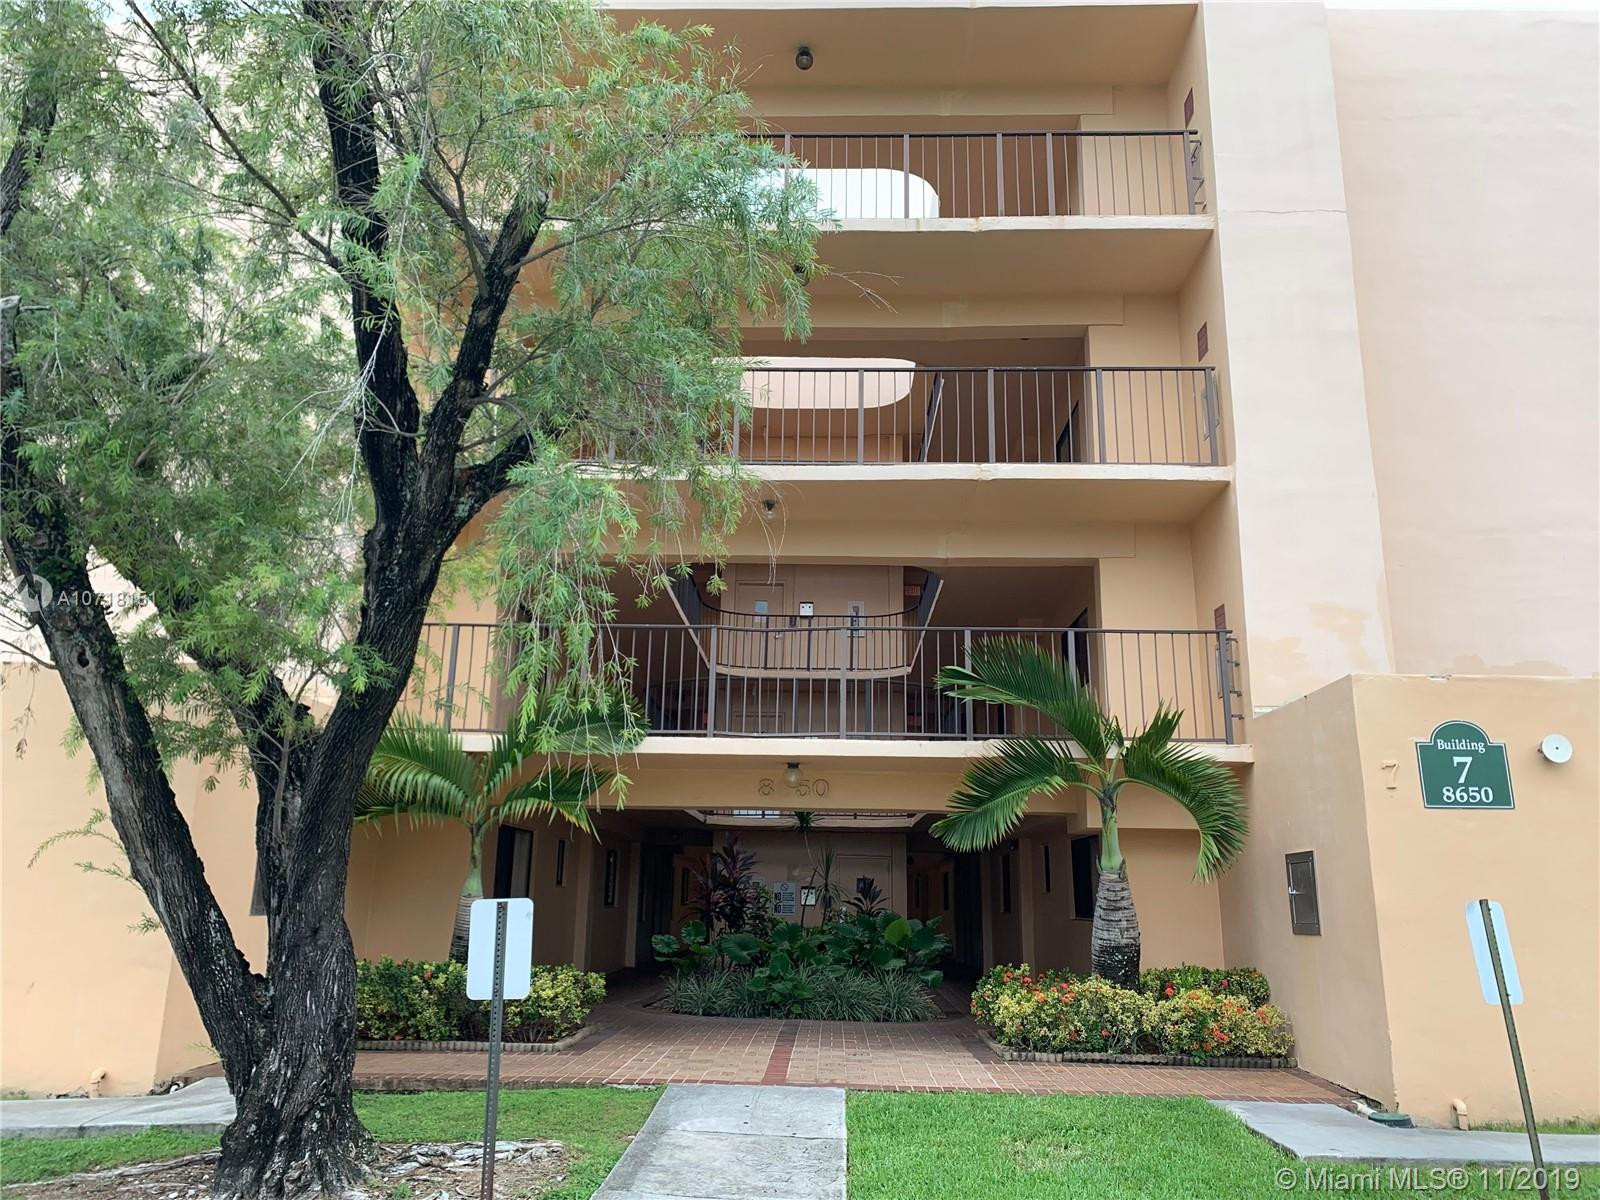 8650 SW 133rd Ave Rd # 315, Miami, Florida 33183, 2 Bedrooms Bedrooms, ,4 BathroomsBathrooms,Residential Lease,For Rent,8650 SW 133rd Ave Rd # 315,A10718151